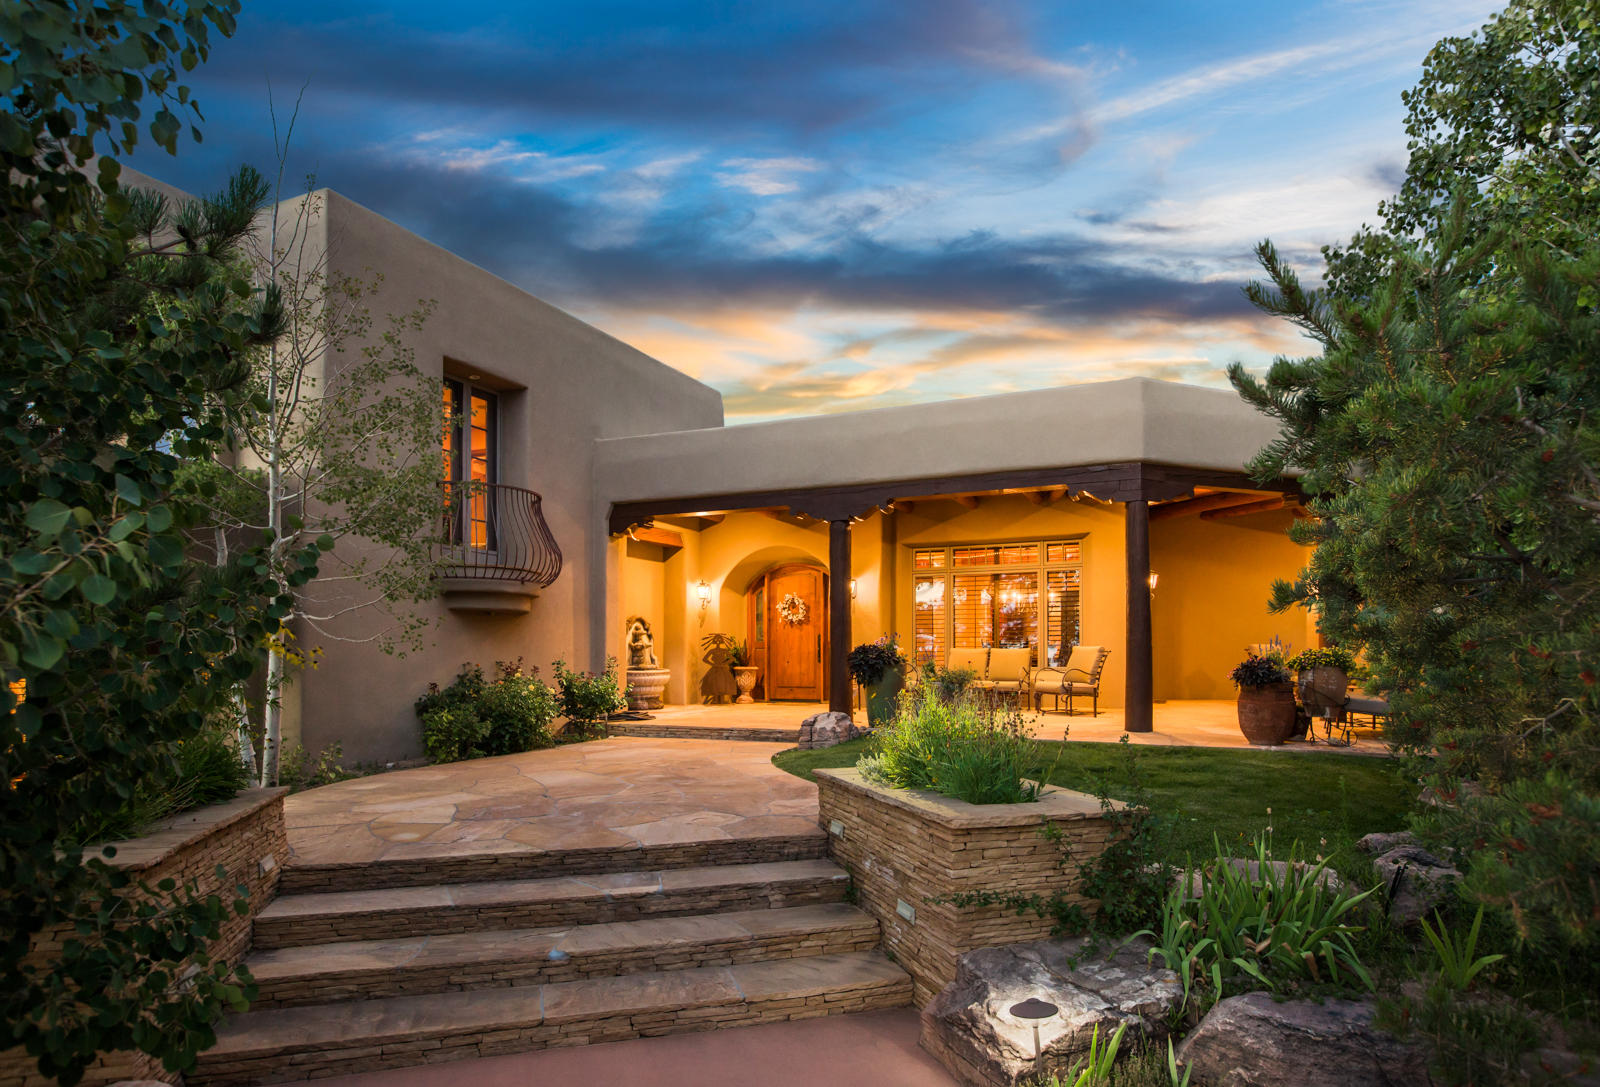 This spectacular residence was conceived by Richard Schalk and was designed to take advantage of the most spectacular views of the Sandia Mountains in Albuquerque. This home presents a rare and unprecedented opportunity to be on the only double lot in High Desert that backs on the national forest. Rich finishes were chosen by a talented interior designer and include hand trowled plaster walls, beautiful beamed ceilings, handcrafted doors, furniture grade cabinetry, and artisan crafted tile. This home is grand in scale, yet comfortable and inviting. Enjoy the most spectacular sunsets from the rear portals, and spectacular city lights from multiple portals. The outdoor living spaces consist of numerous covered portals, a sparkling pool, an outdoor fireplace and an outdoor kitchen.